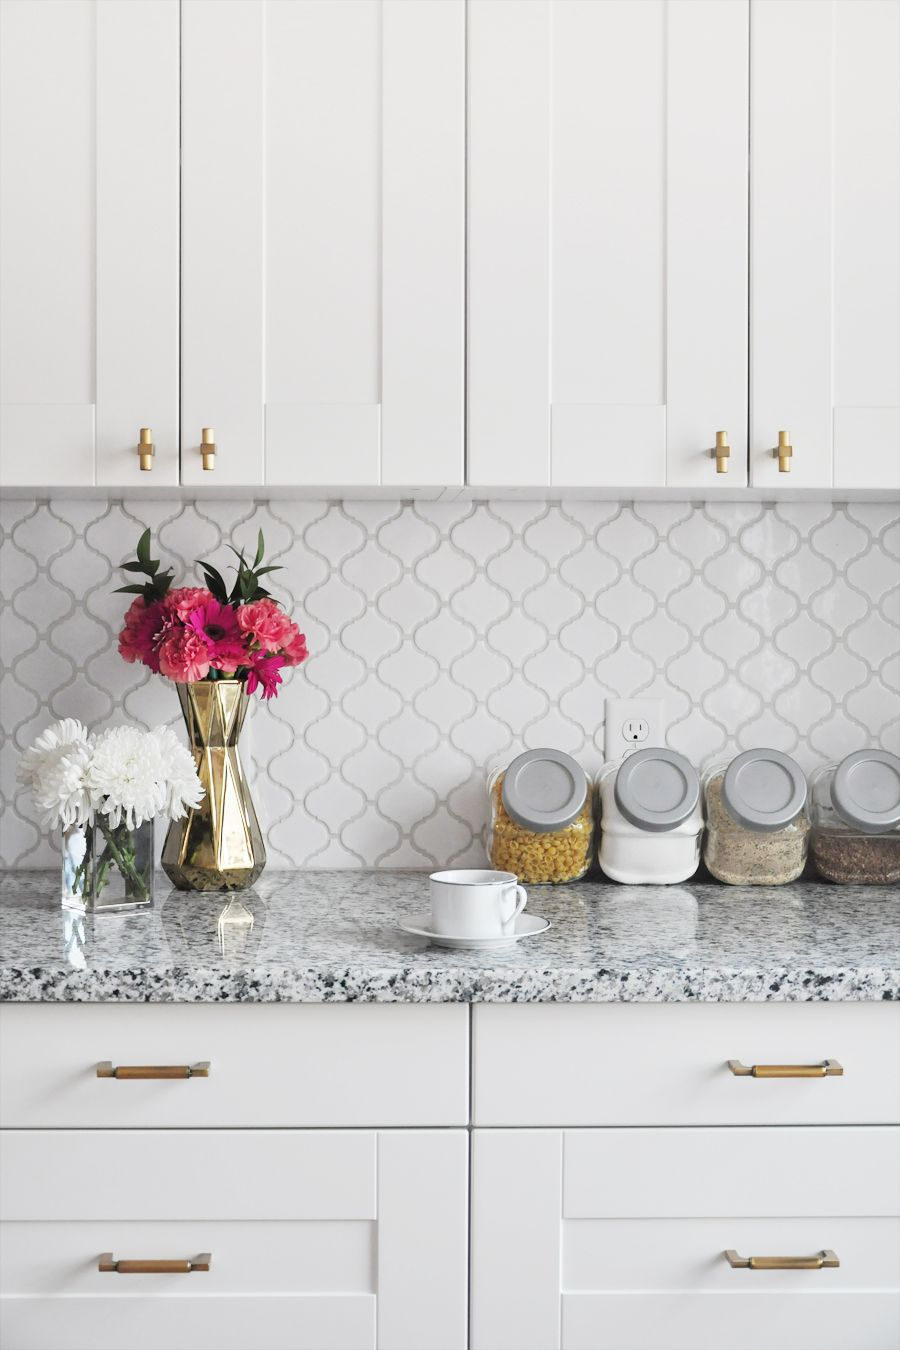 How to tile a kitchen backsplash diy tutorial sponsored by how to tile a kitchen backsplash diy tutorial dailygadgetfo Choice Image